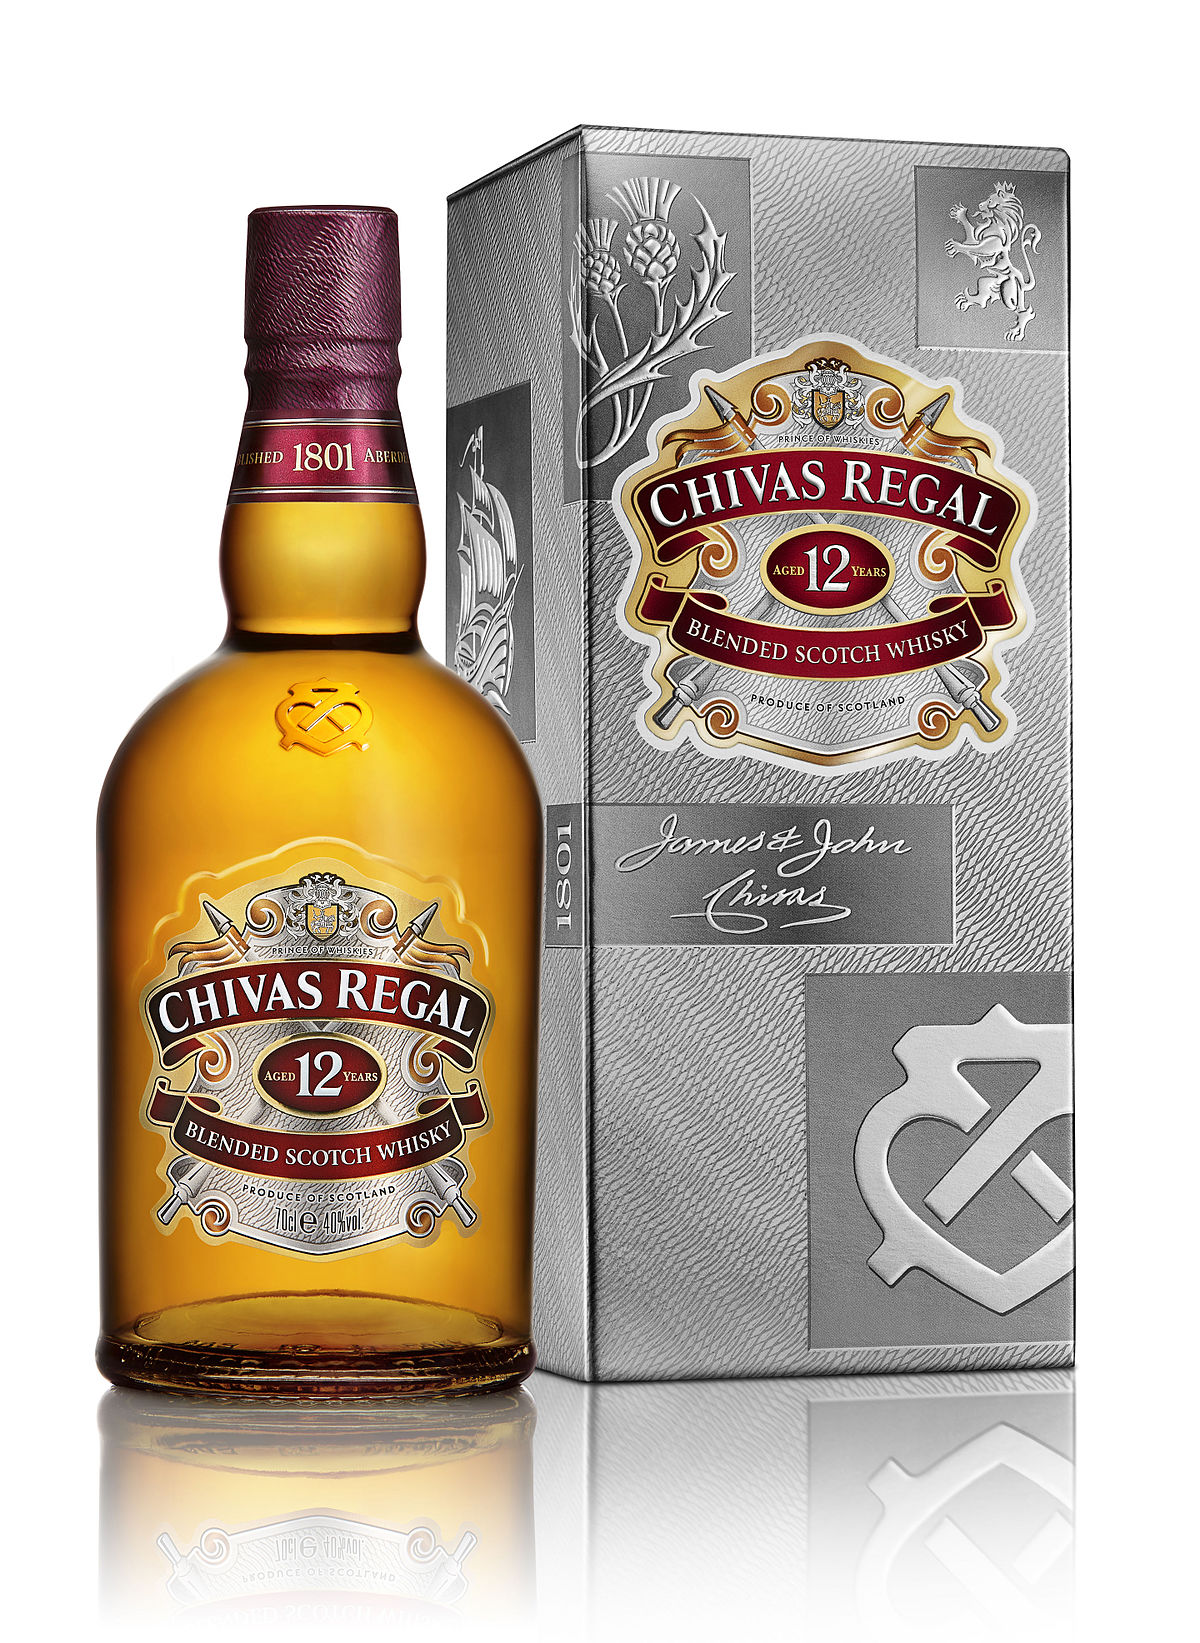 Chivas regal wikipedia voltagebd